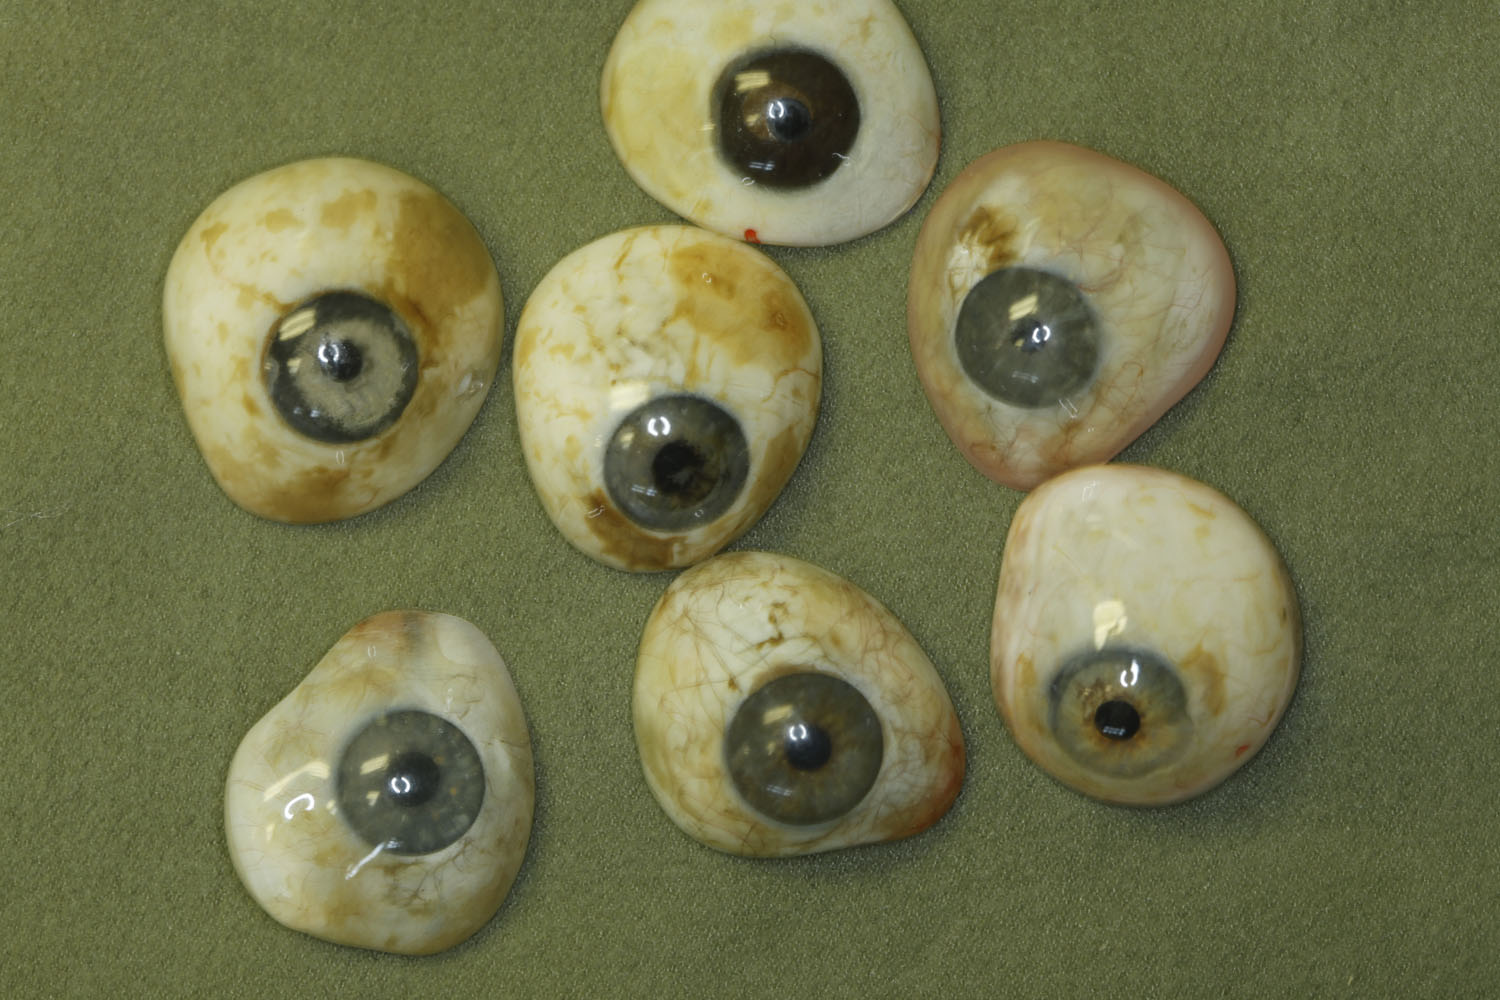 Biannual Cleanings Recommended For Prosthetic Eyes